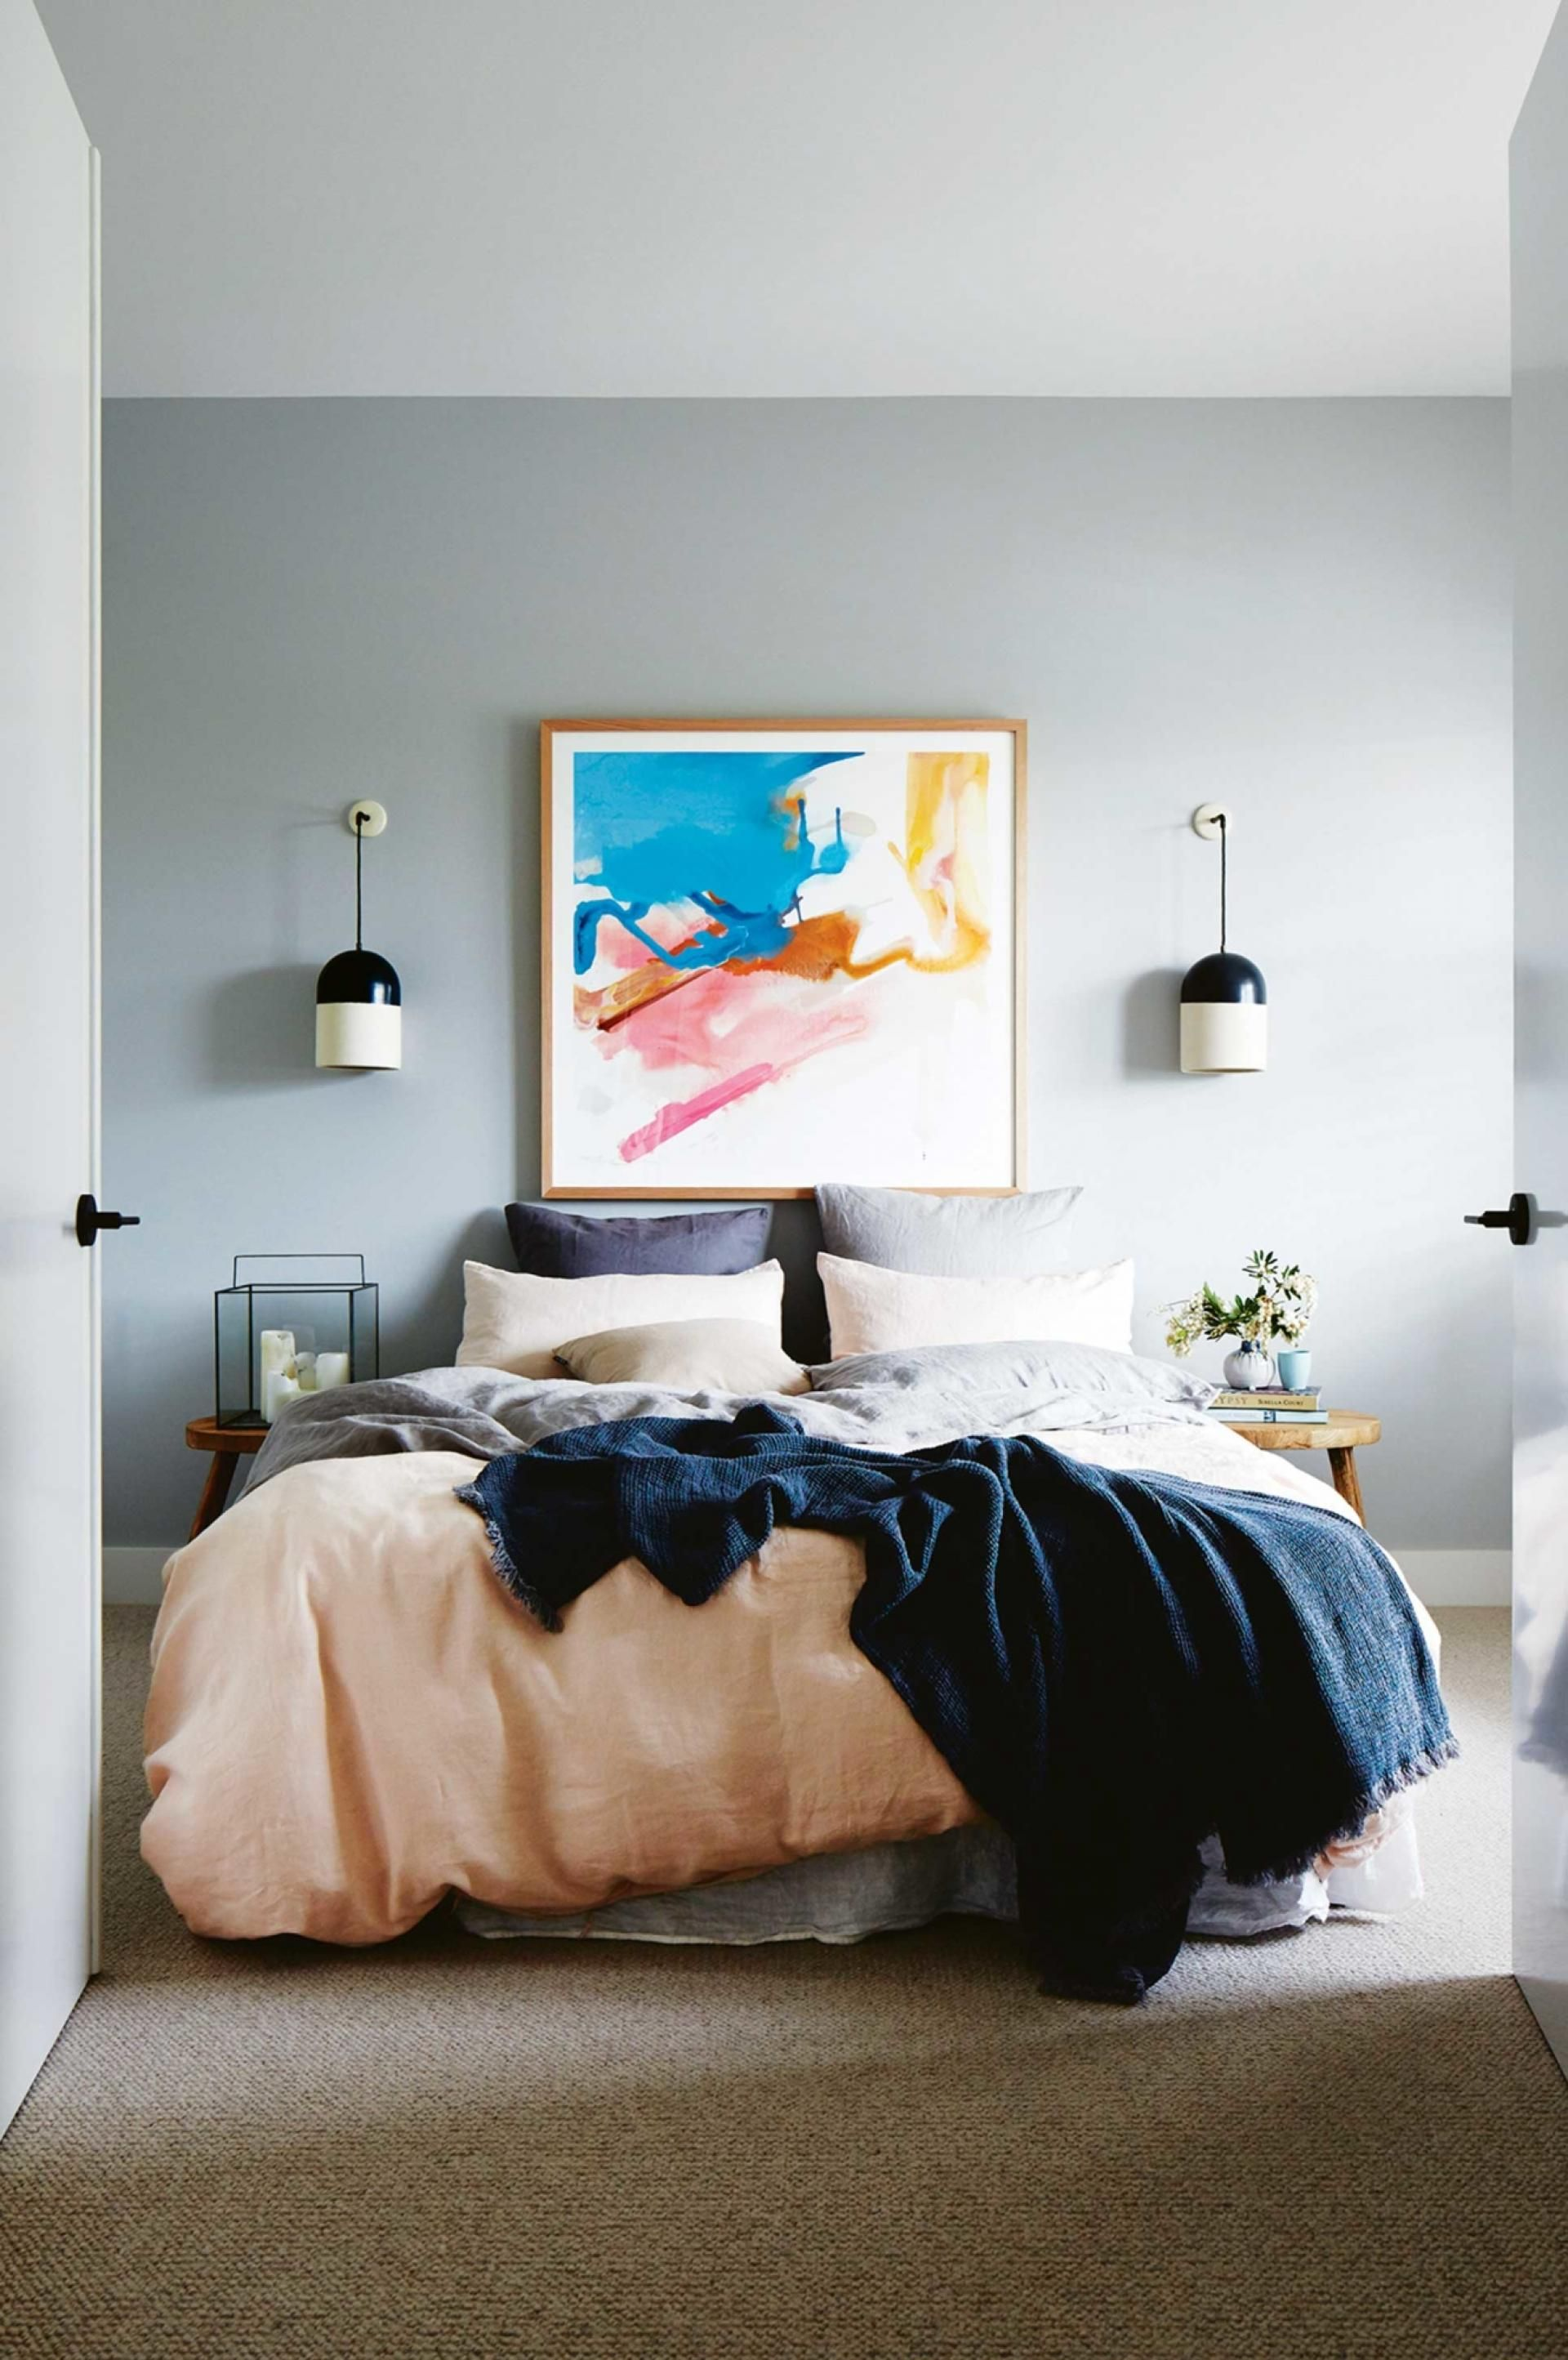 best images about feature walls yes or no on pinterest